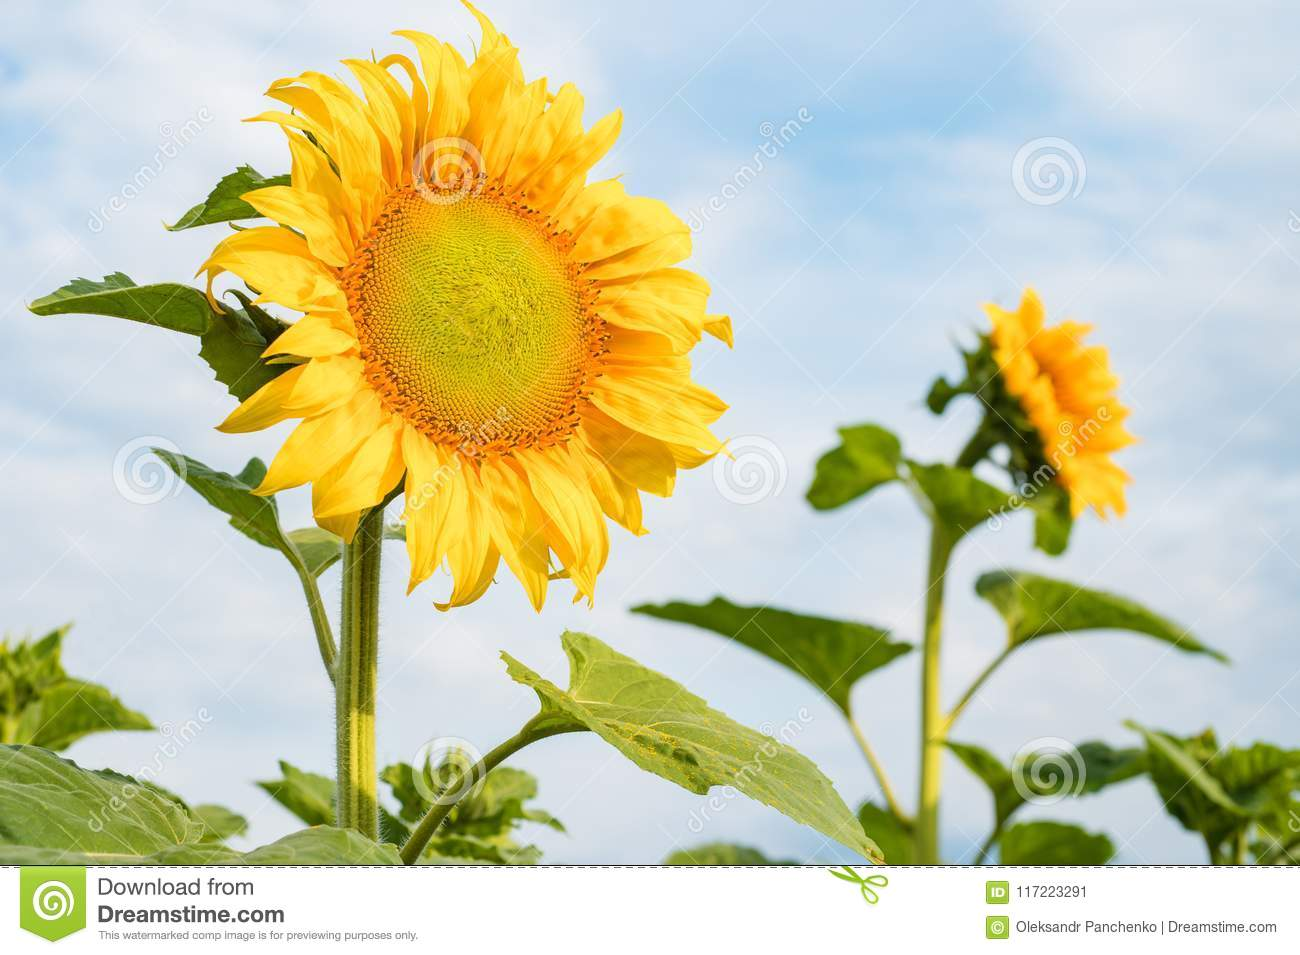 A flower of a sunflower blossoms on a field of sunflowers on a s